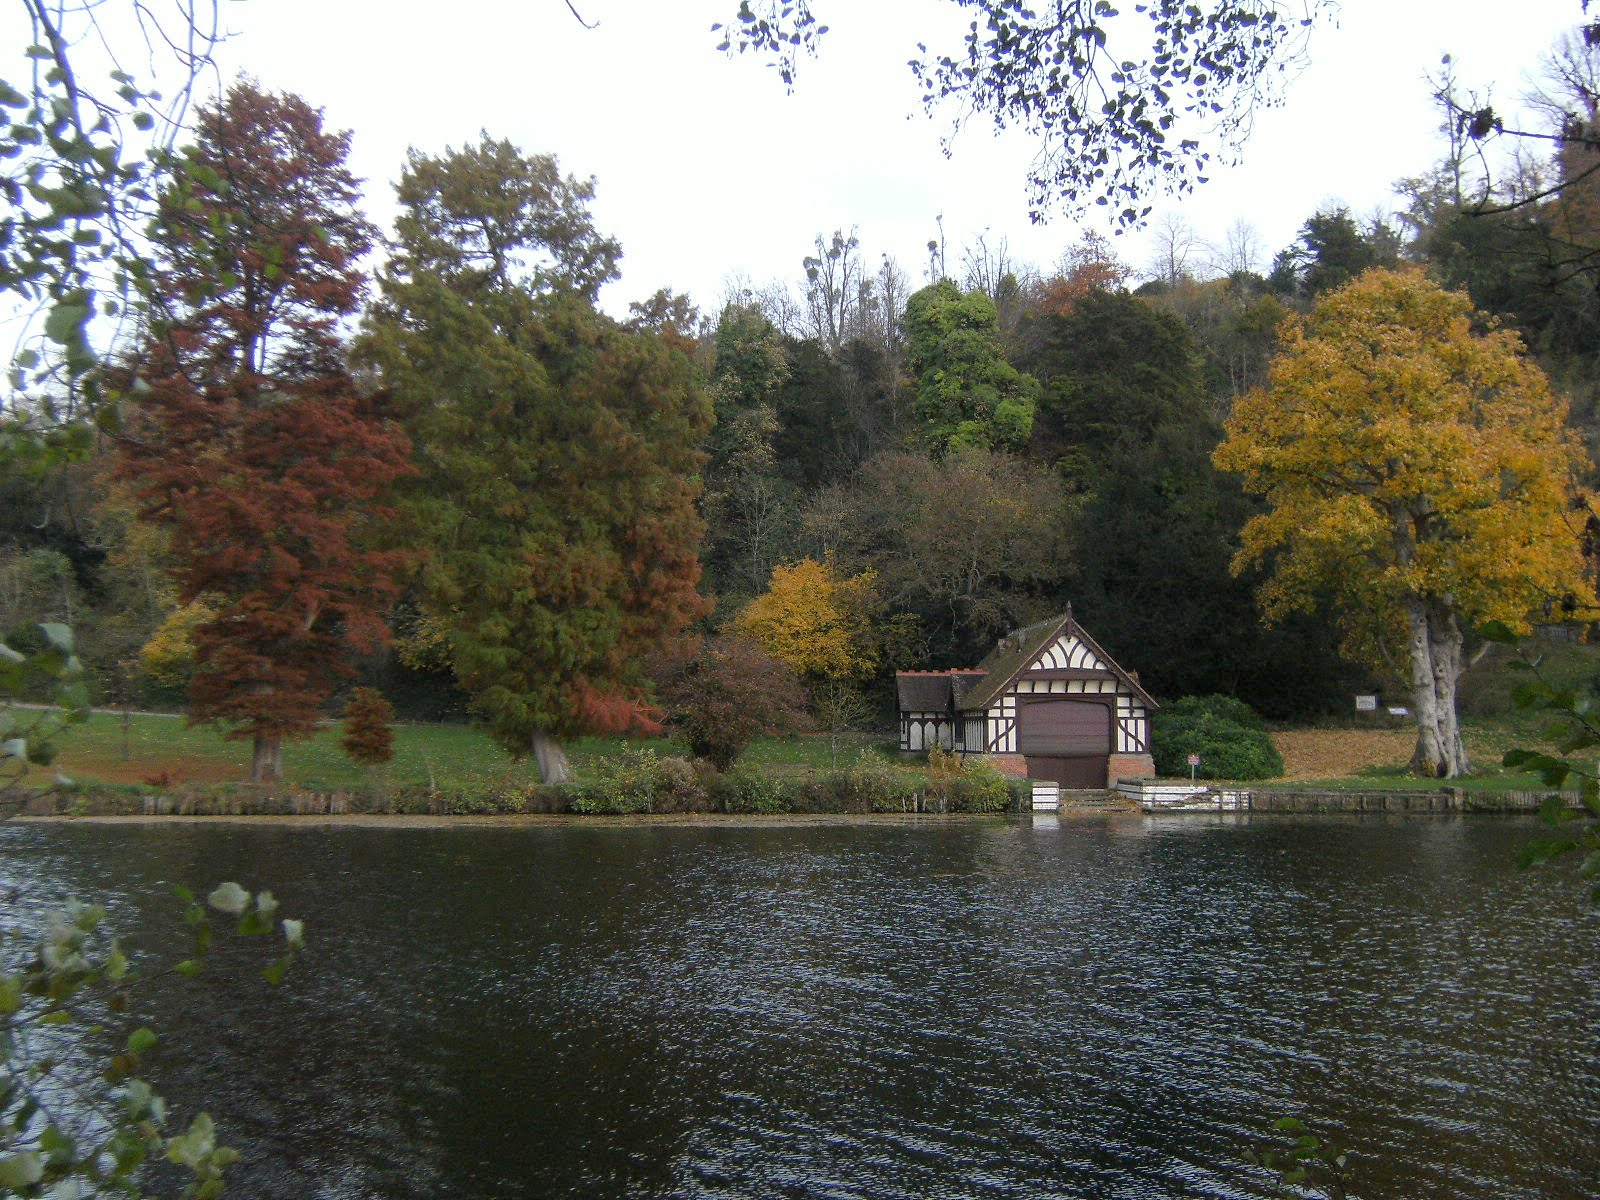 1011040059 Boathouse on the Cliveden estate